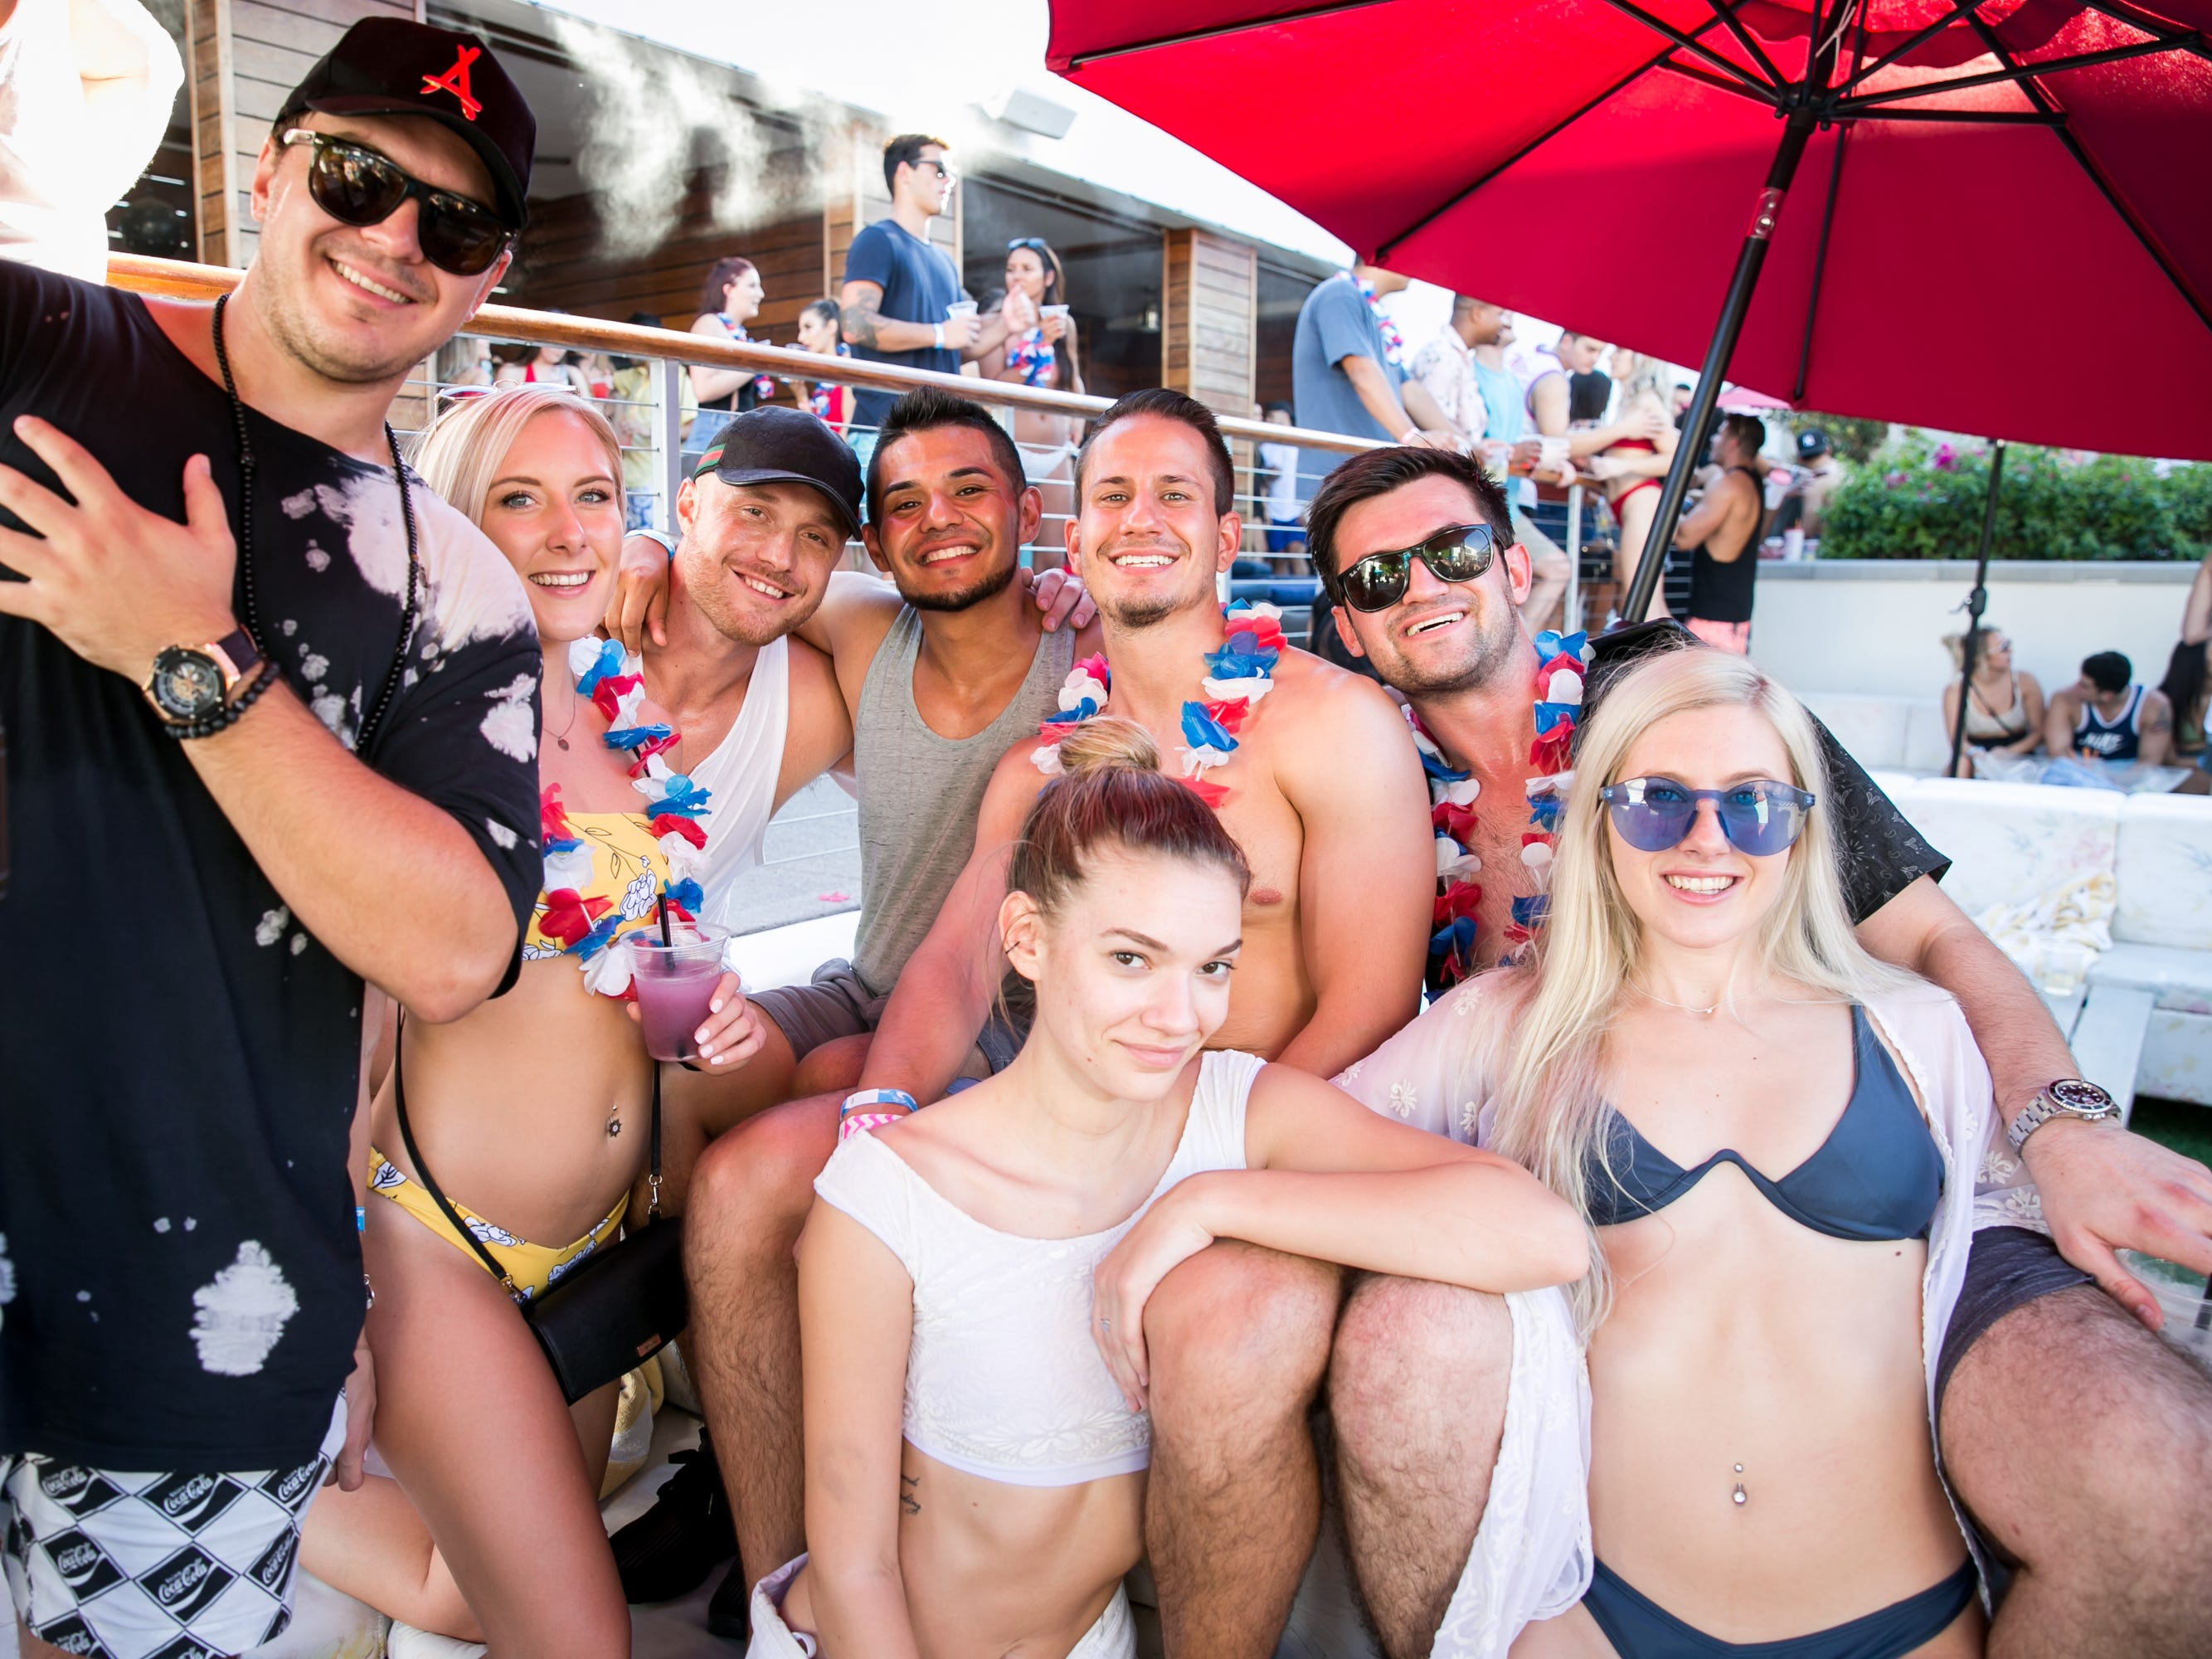 This group enjoyed some shenanigans during the Maya Dayclub Finale in Scottsdale on Monday, September 3, 2018.